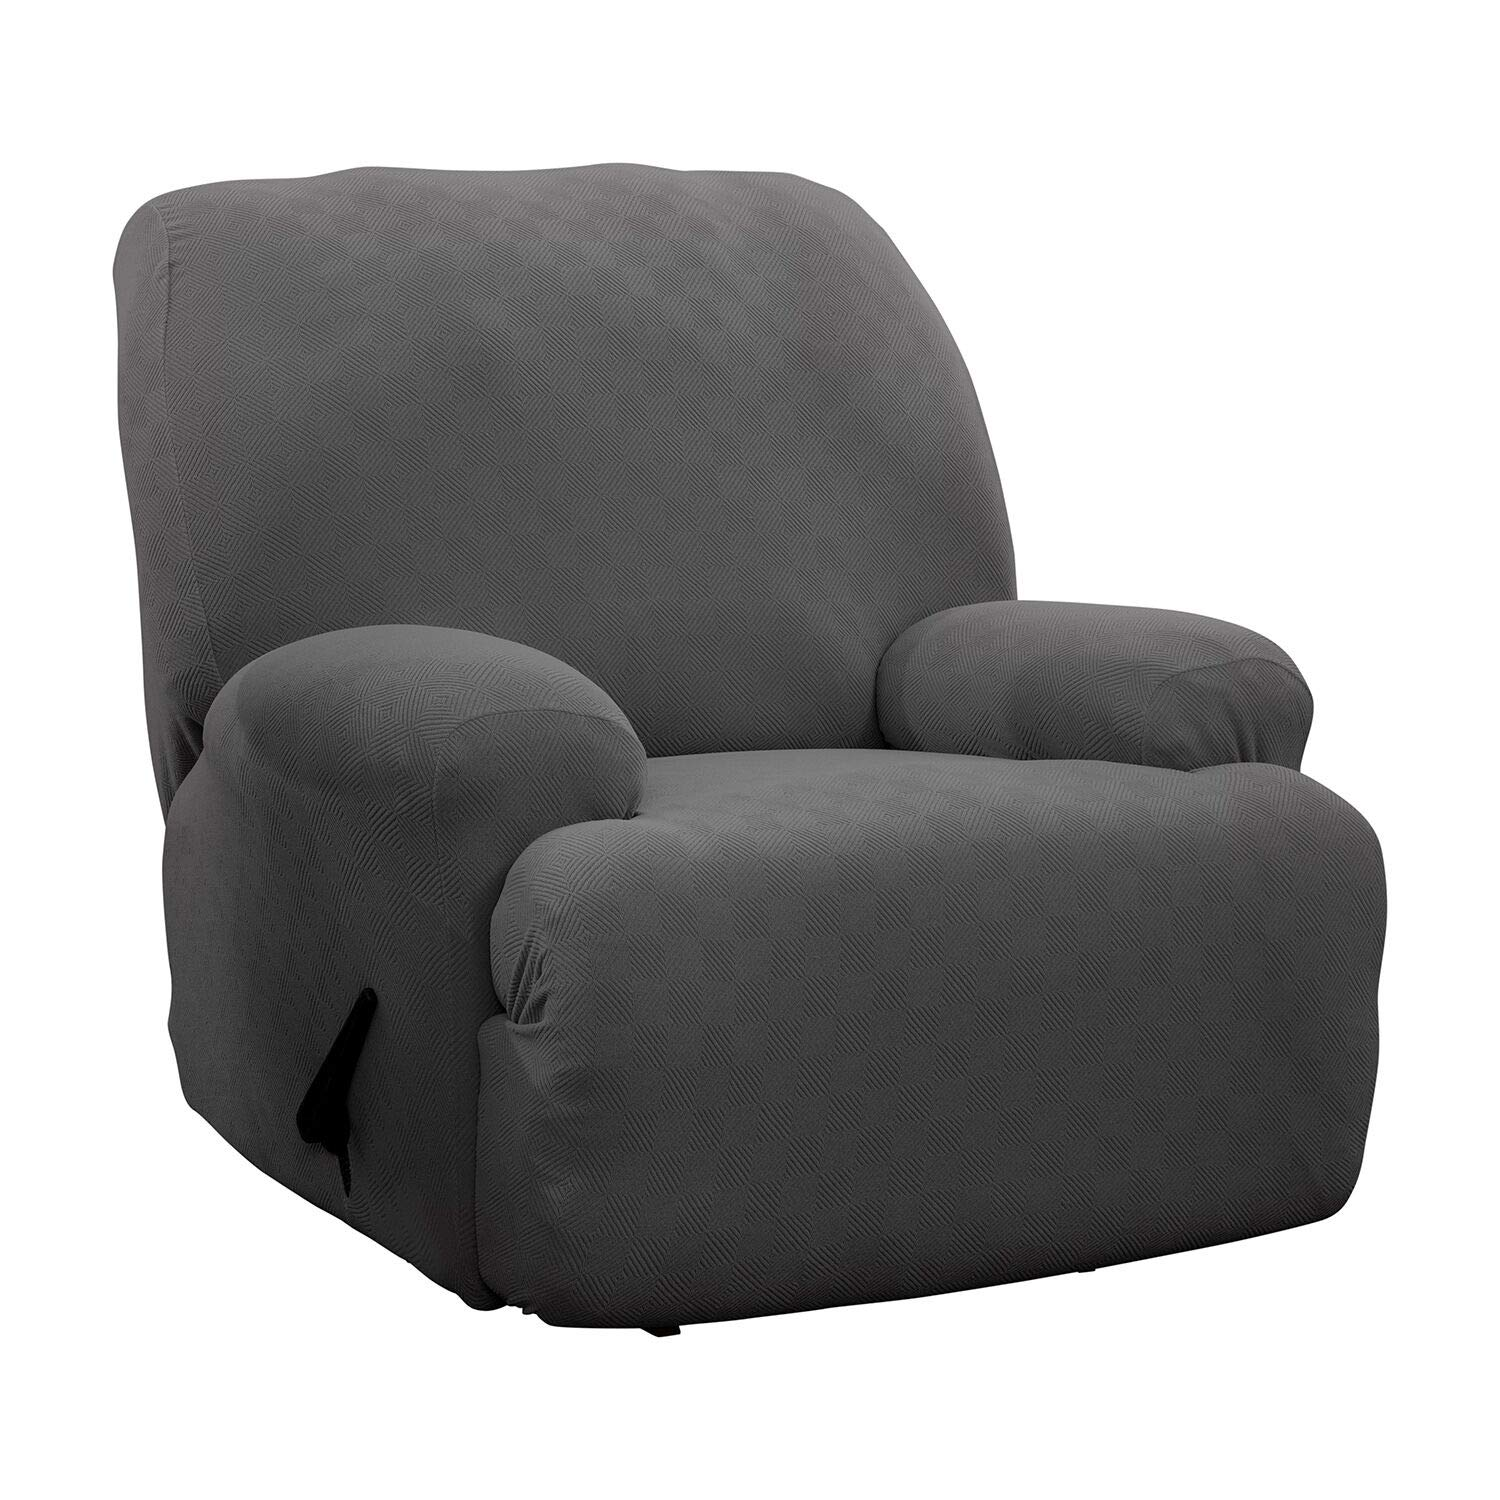 Stretch Sensations, Newport Jumbo Recliner Slipcover, Oversized Recliners, Perfect Chair Protection, Comfortable Easy Stretch Fabric (Grey) by Stretch Sensations